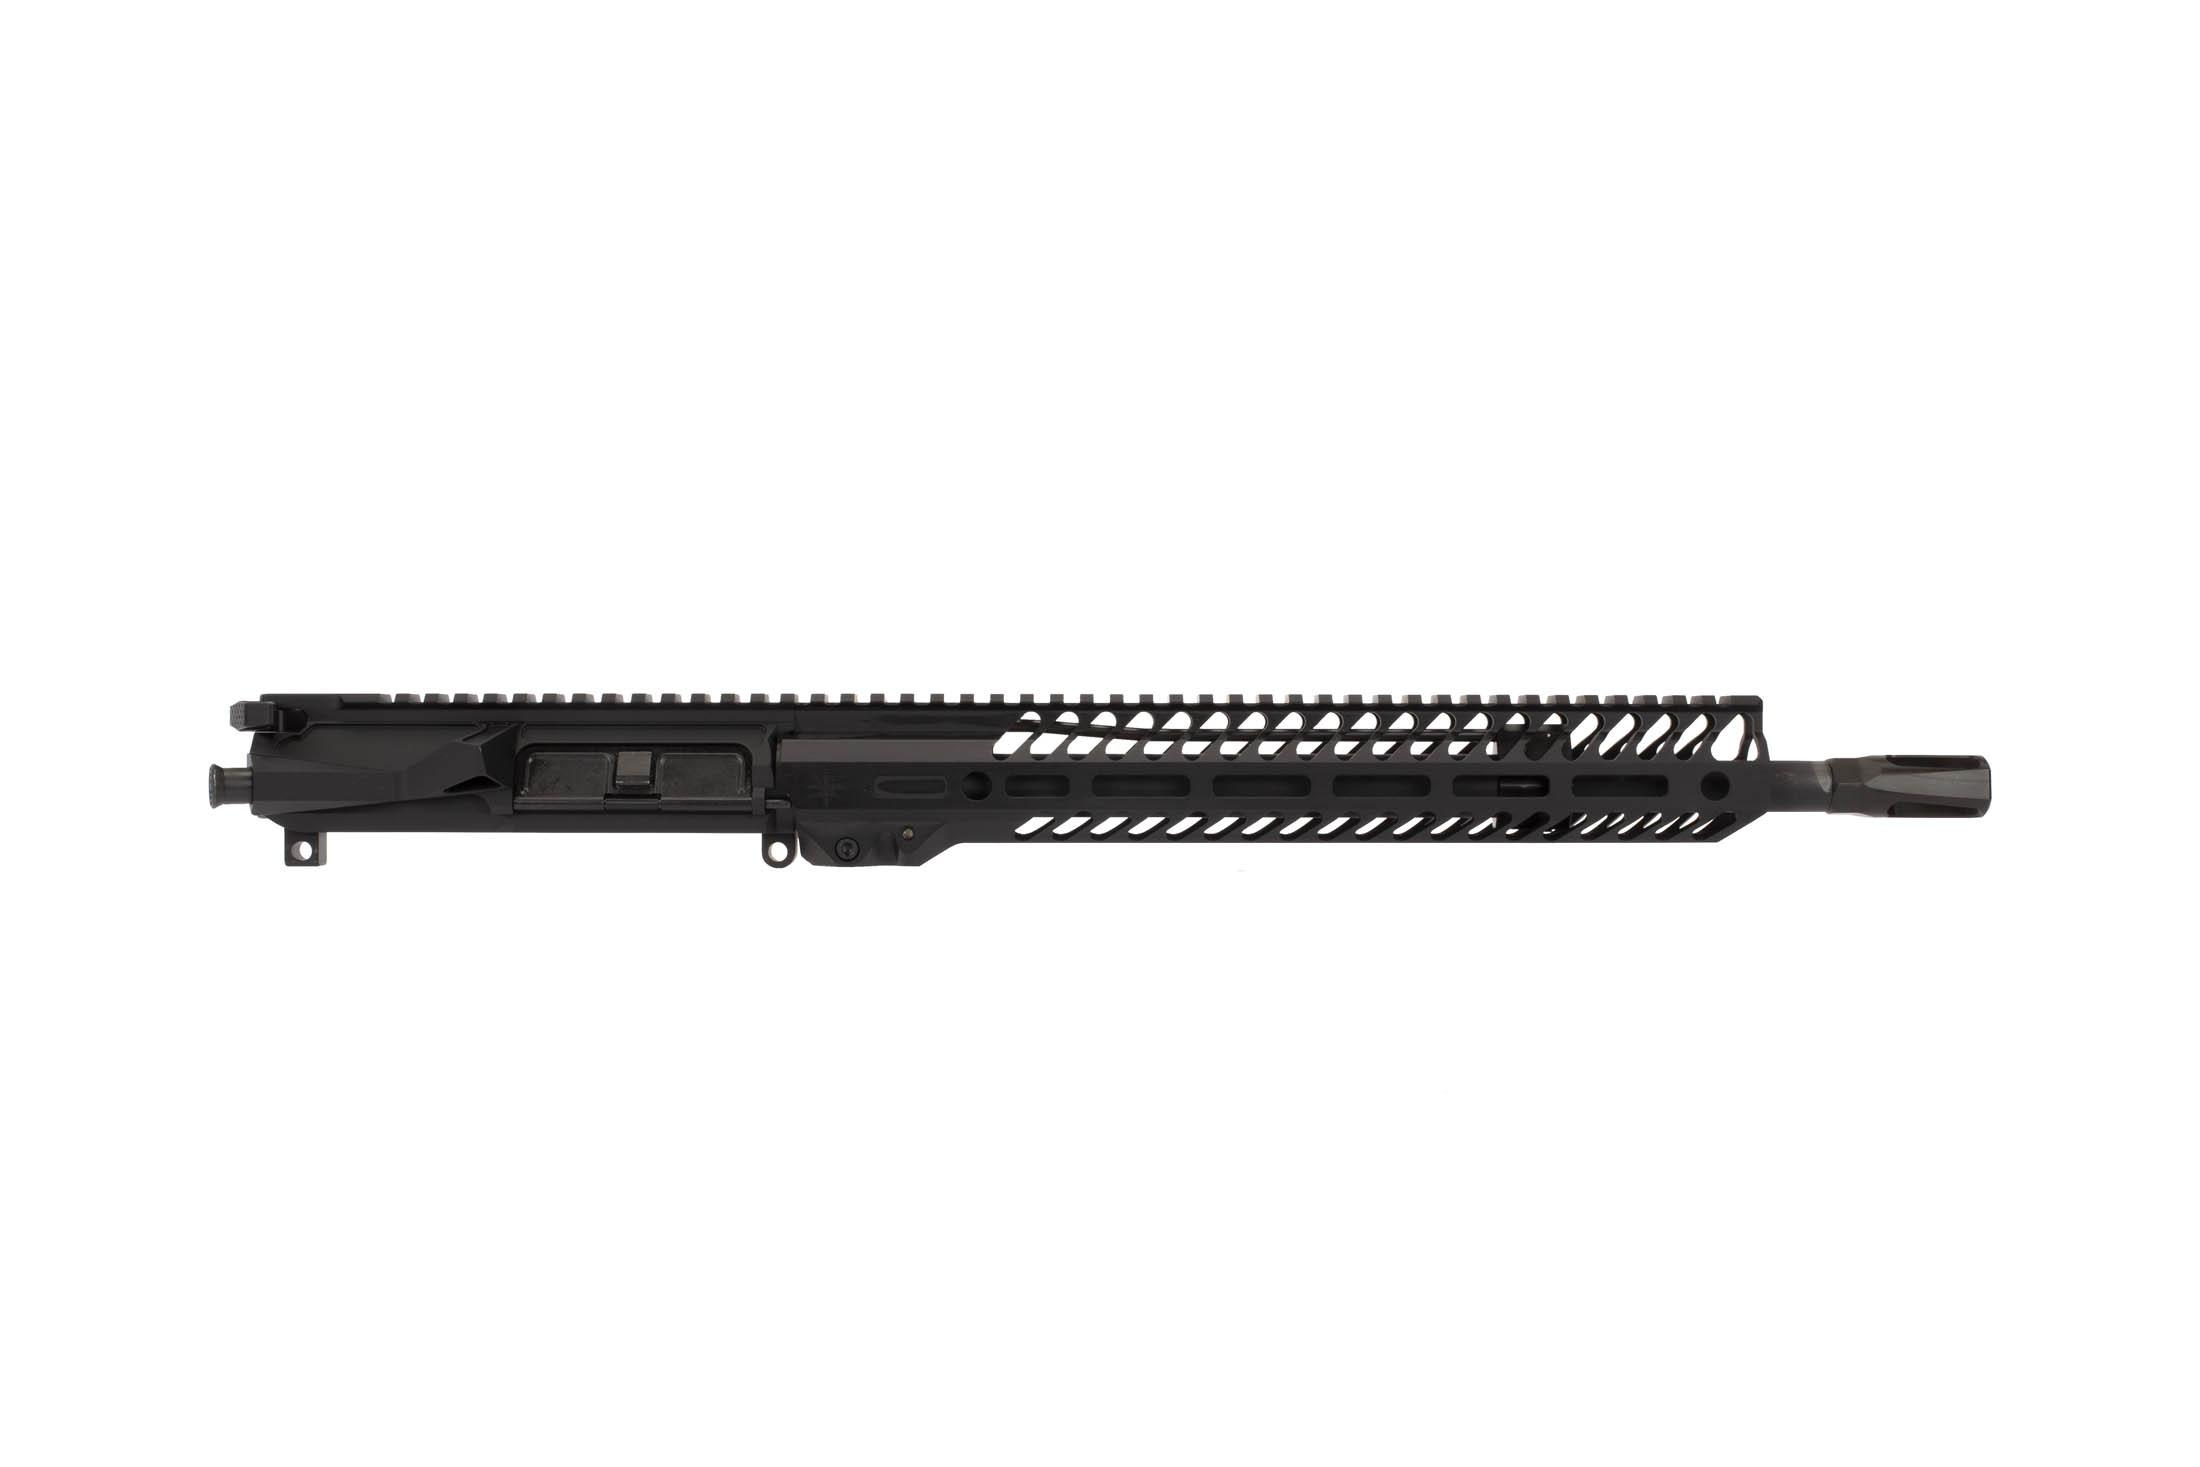 The Seekins Precision 14.5 NX14 Complete Upper is protected by a Type III Class 2 hardcoat anodized finish